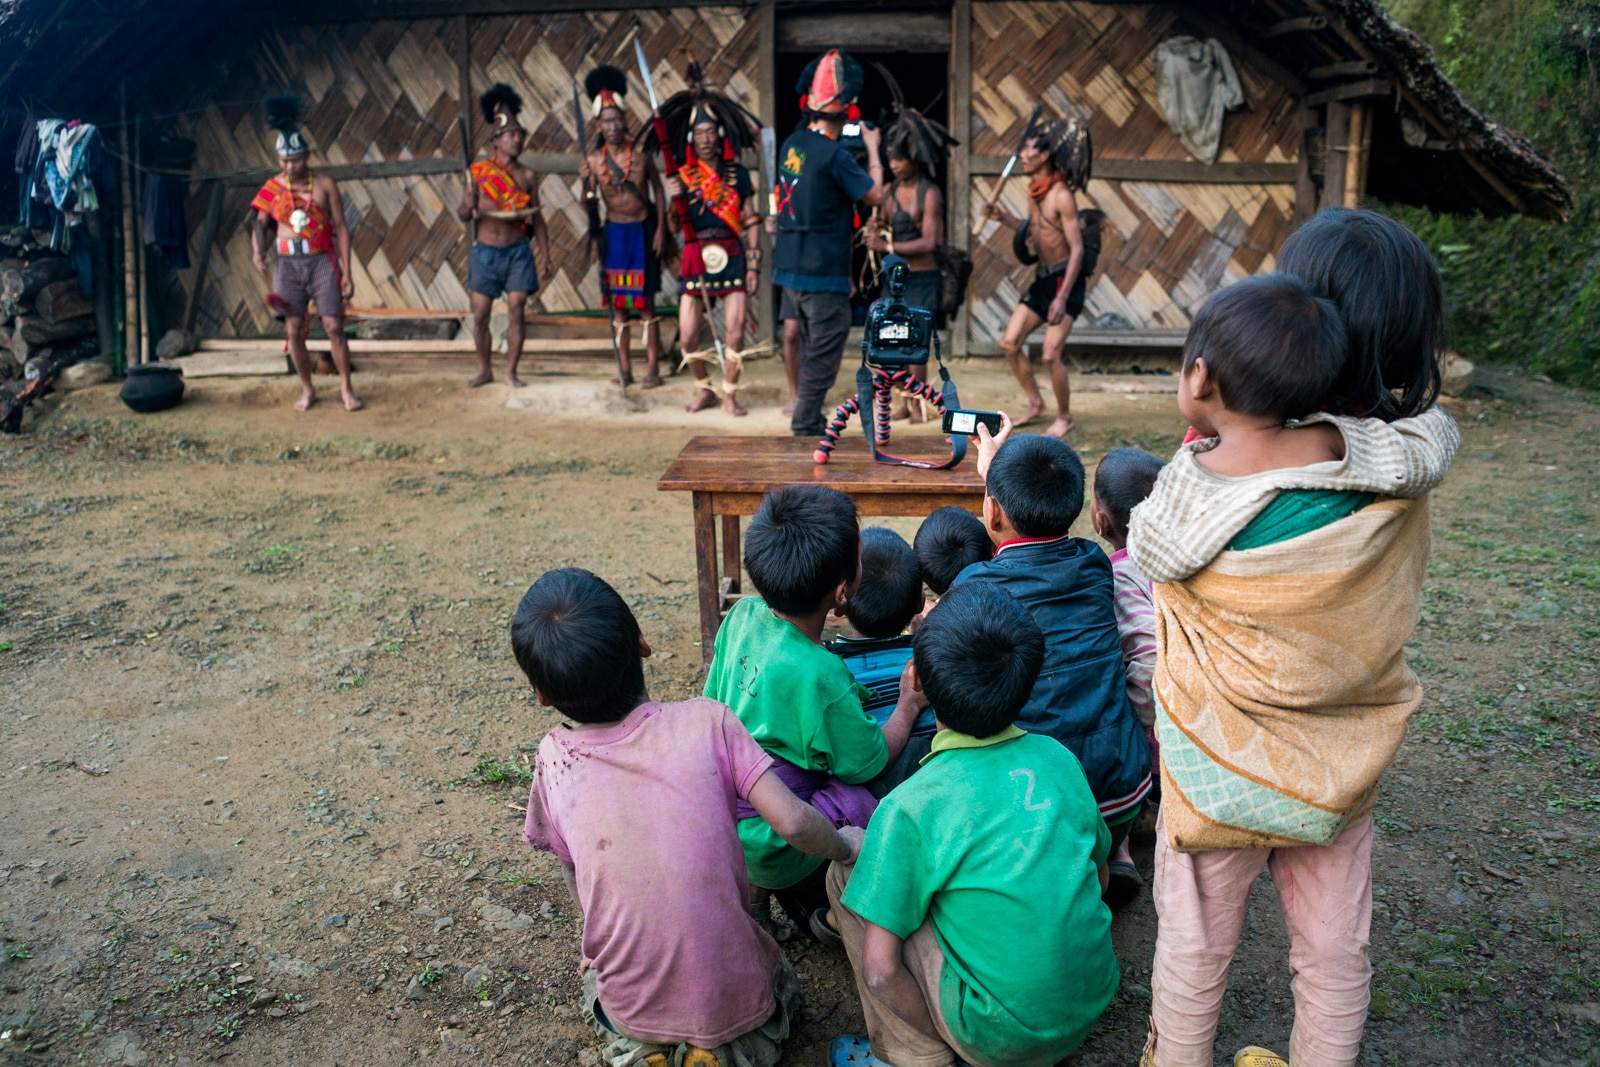 Photos of traditional culture in Longwa, Nagaland, a headhunter village in Northeast India - Children watching a foreigner make a documentary - Lost With Purpose